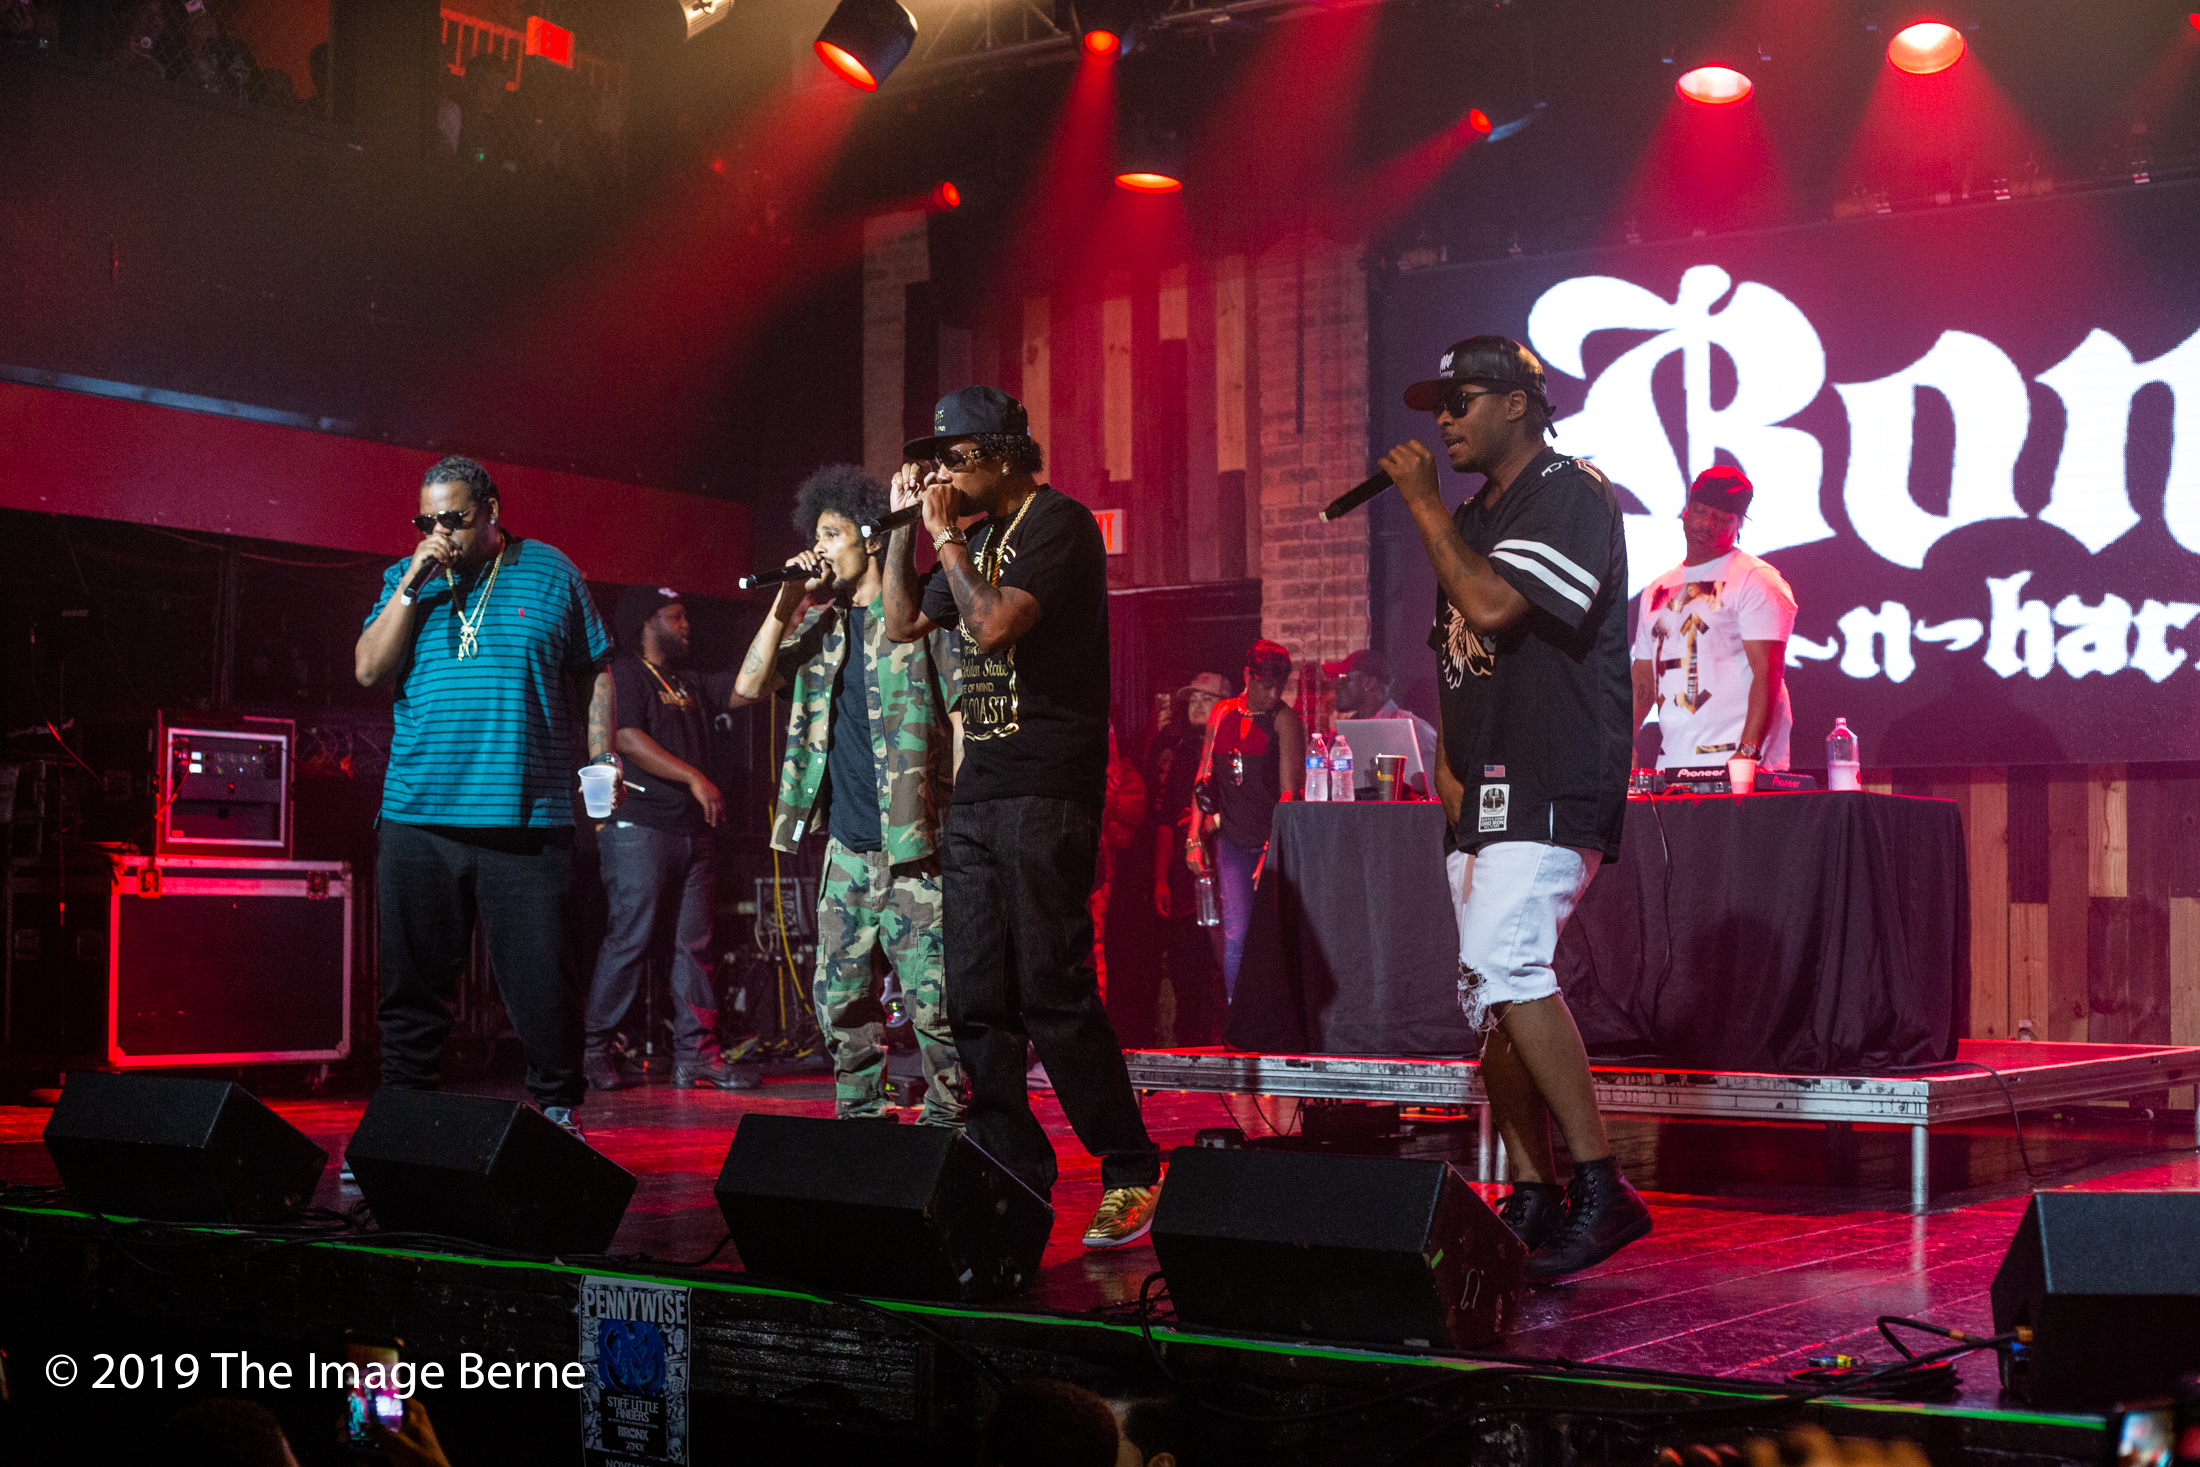 Krayzie Bone, Wish Bone, Flesh-N-Bone, Layzie Bone, and Bizzy Bone-004.jpg